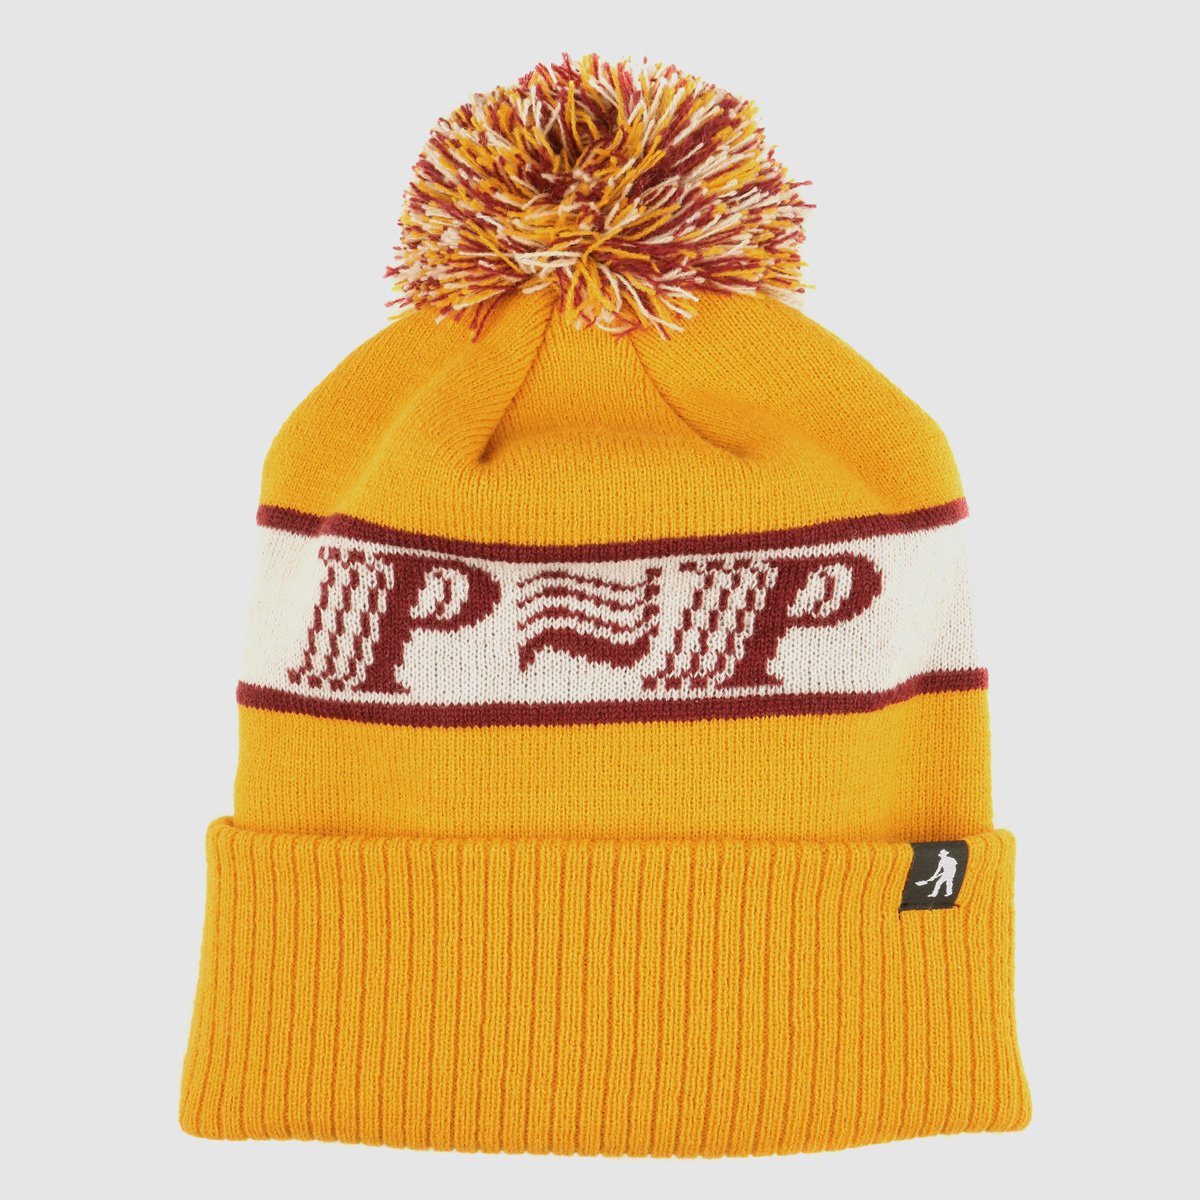 "PASS~PORT ""PPP~PPP"" POM POM BEANIE YELLOW"